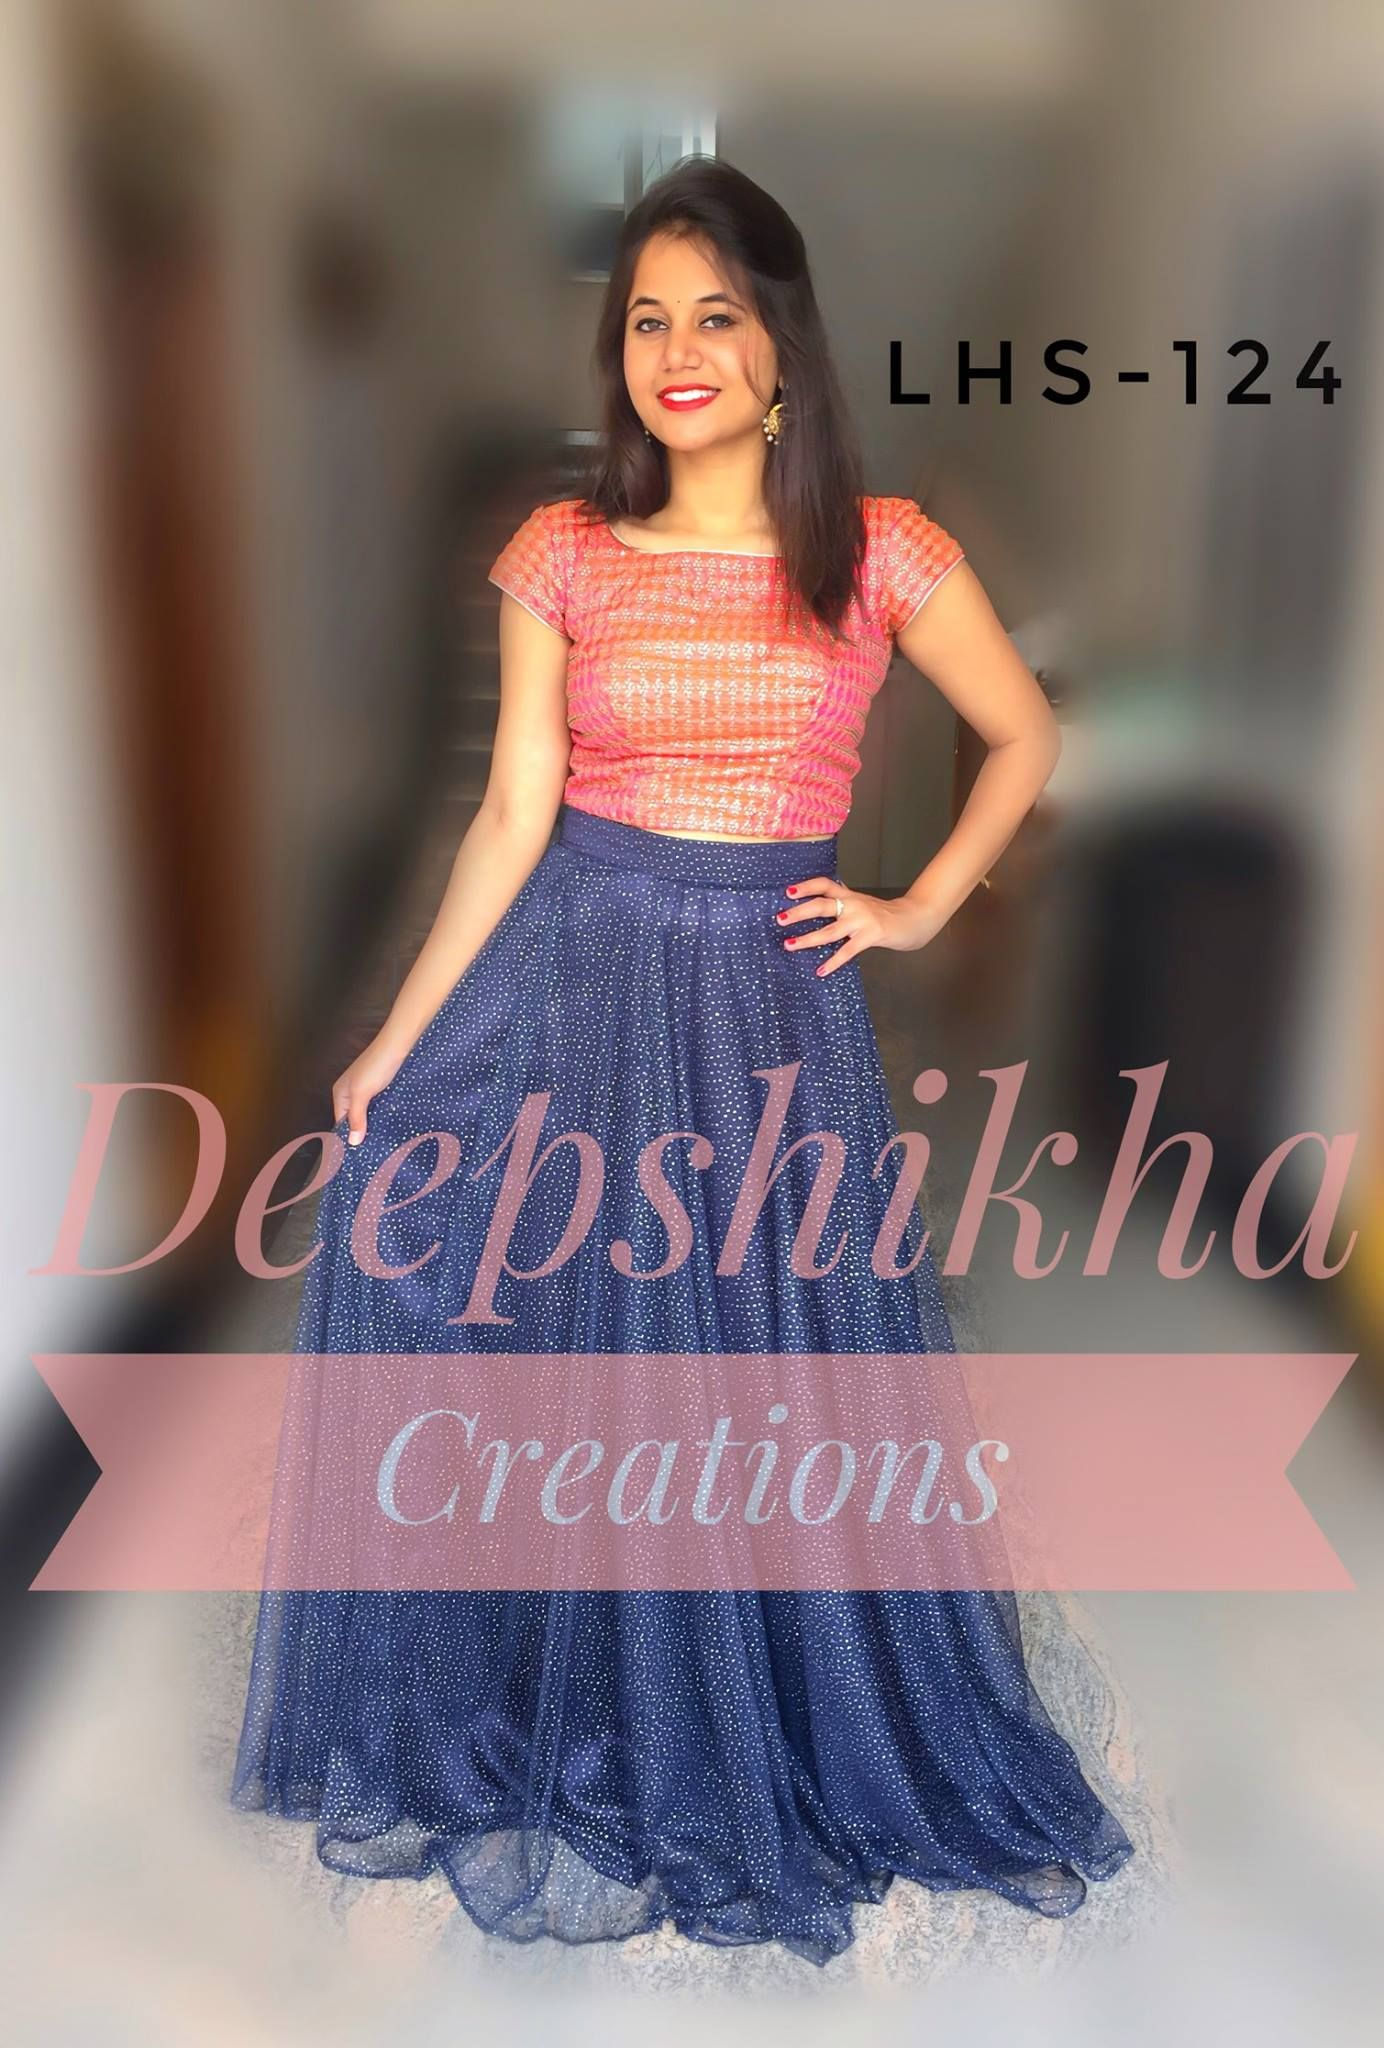 8bb2ceec3bf72 LHS 124For queries kindly inbox us orEmail   deepshikhacreations gmail.com  orWhatsapp Call   919059683293 29 November 2016